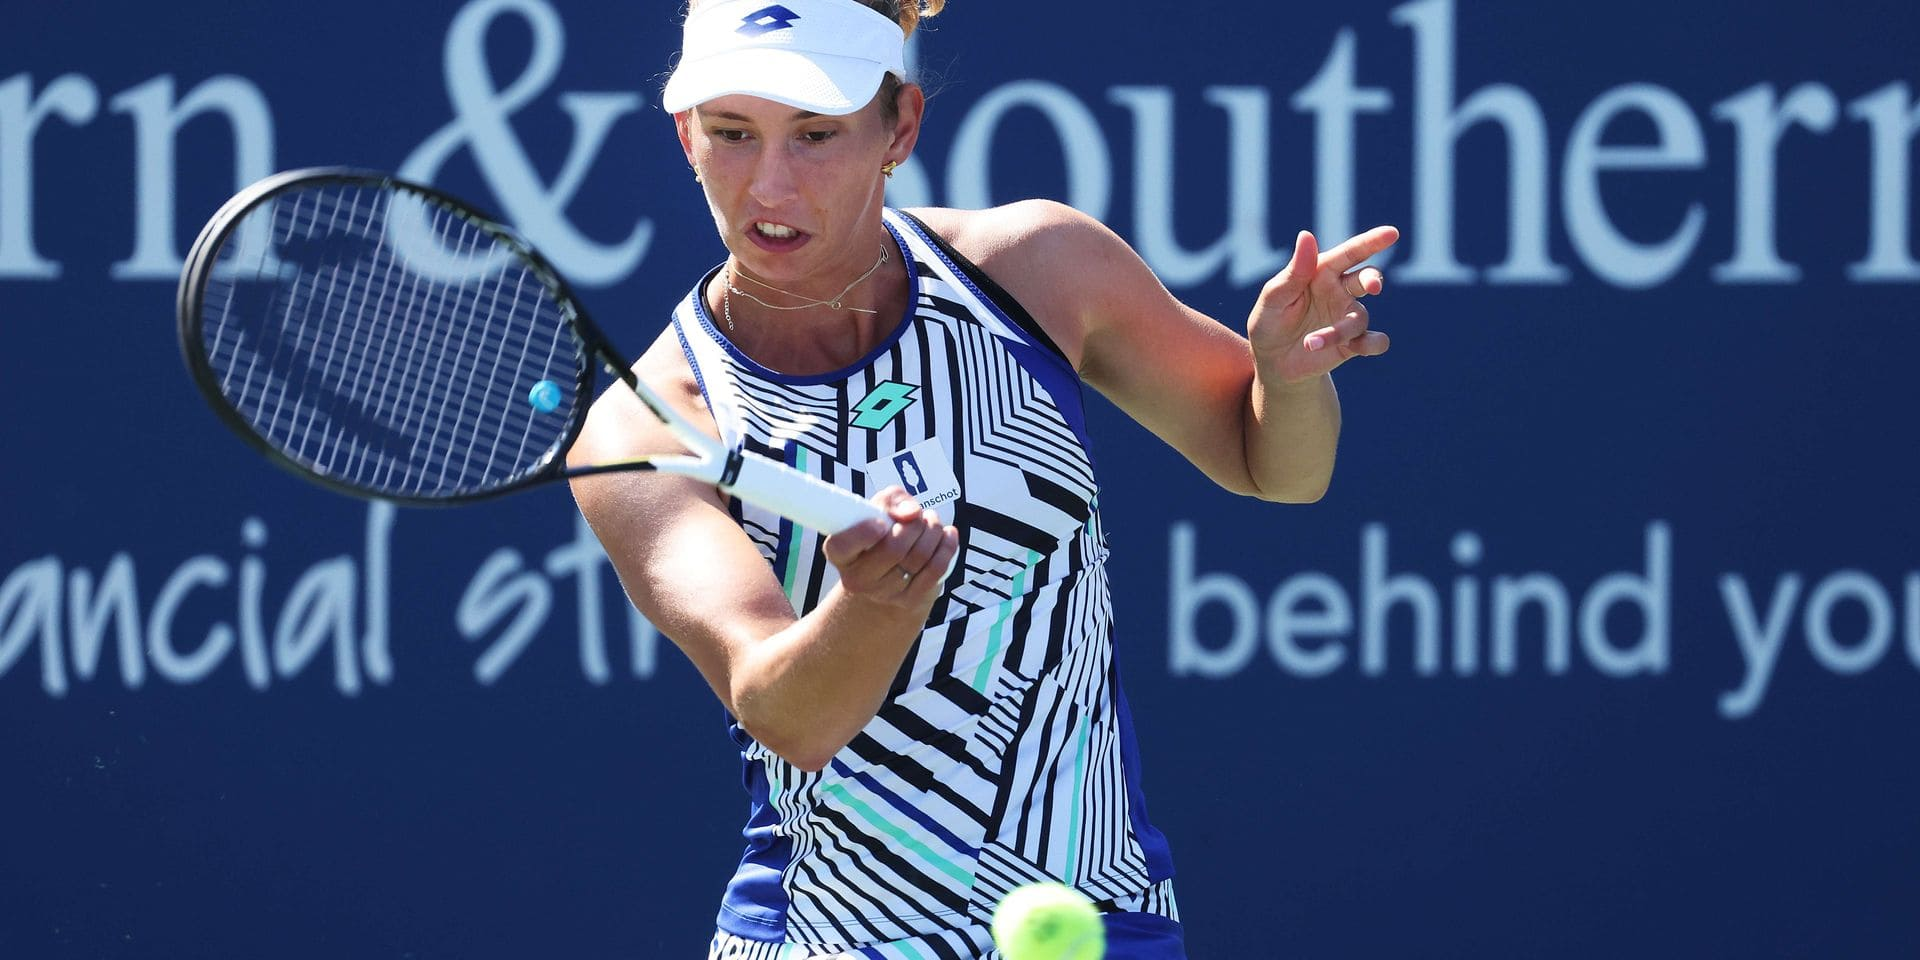 Western & Southern Open - Day 7